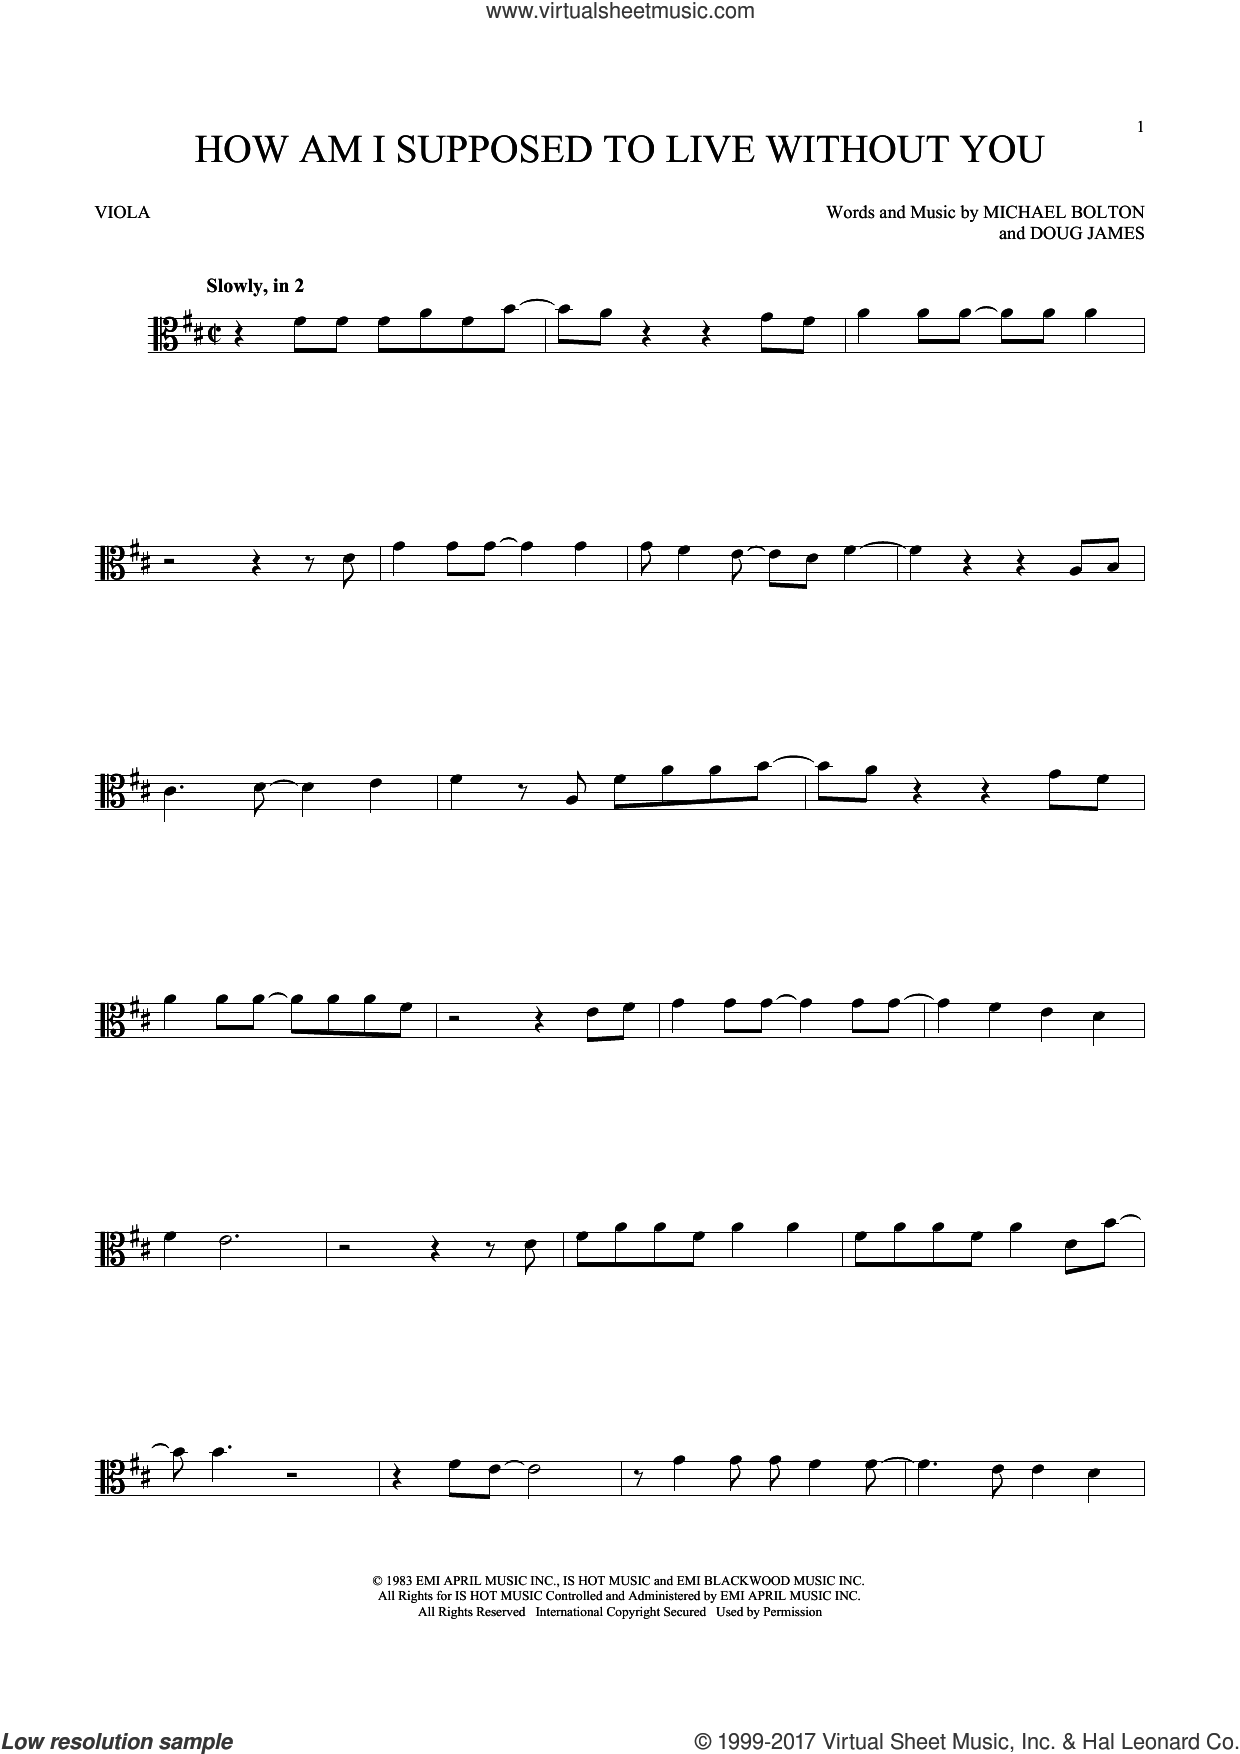 How Am I Supposed To Live Without You sheet music for viola solo by Doug James and Michael Bolton. Score Image Preview.